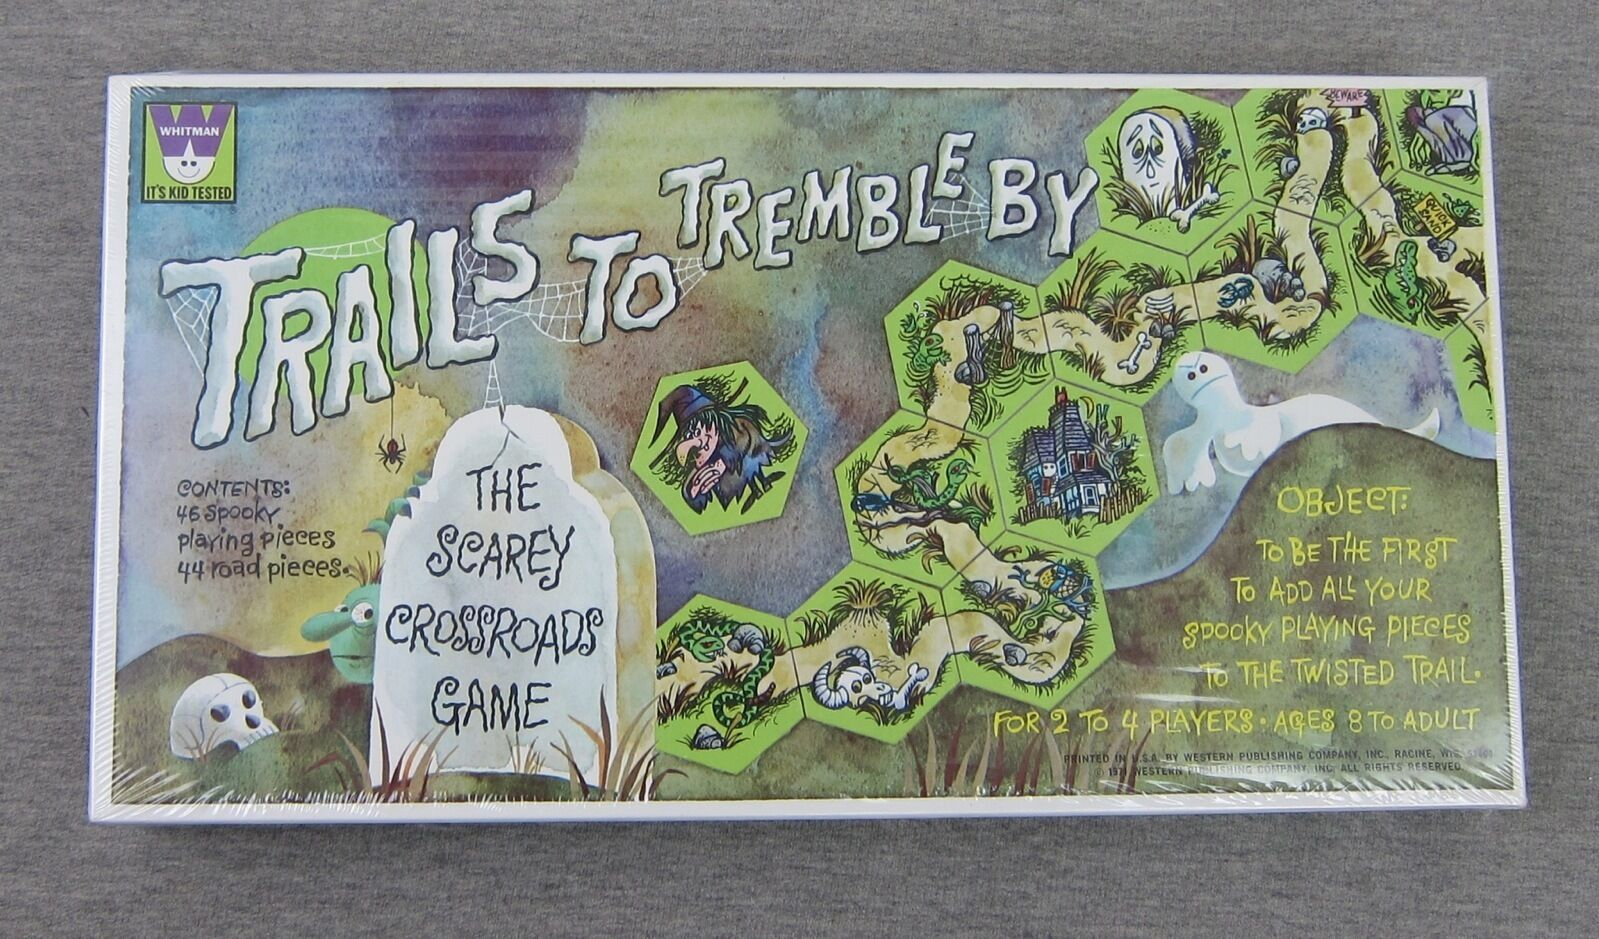 NEW Vintage Whitman TRAILS TO TREMBLE BY Scarey Crossroads Game SEALED 1971 RARE